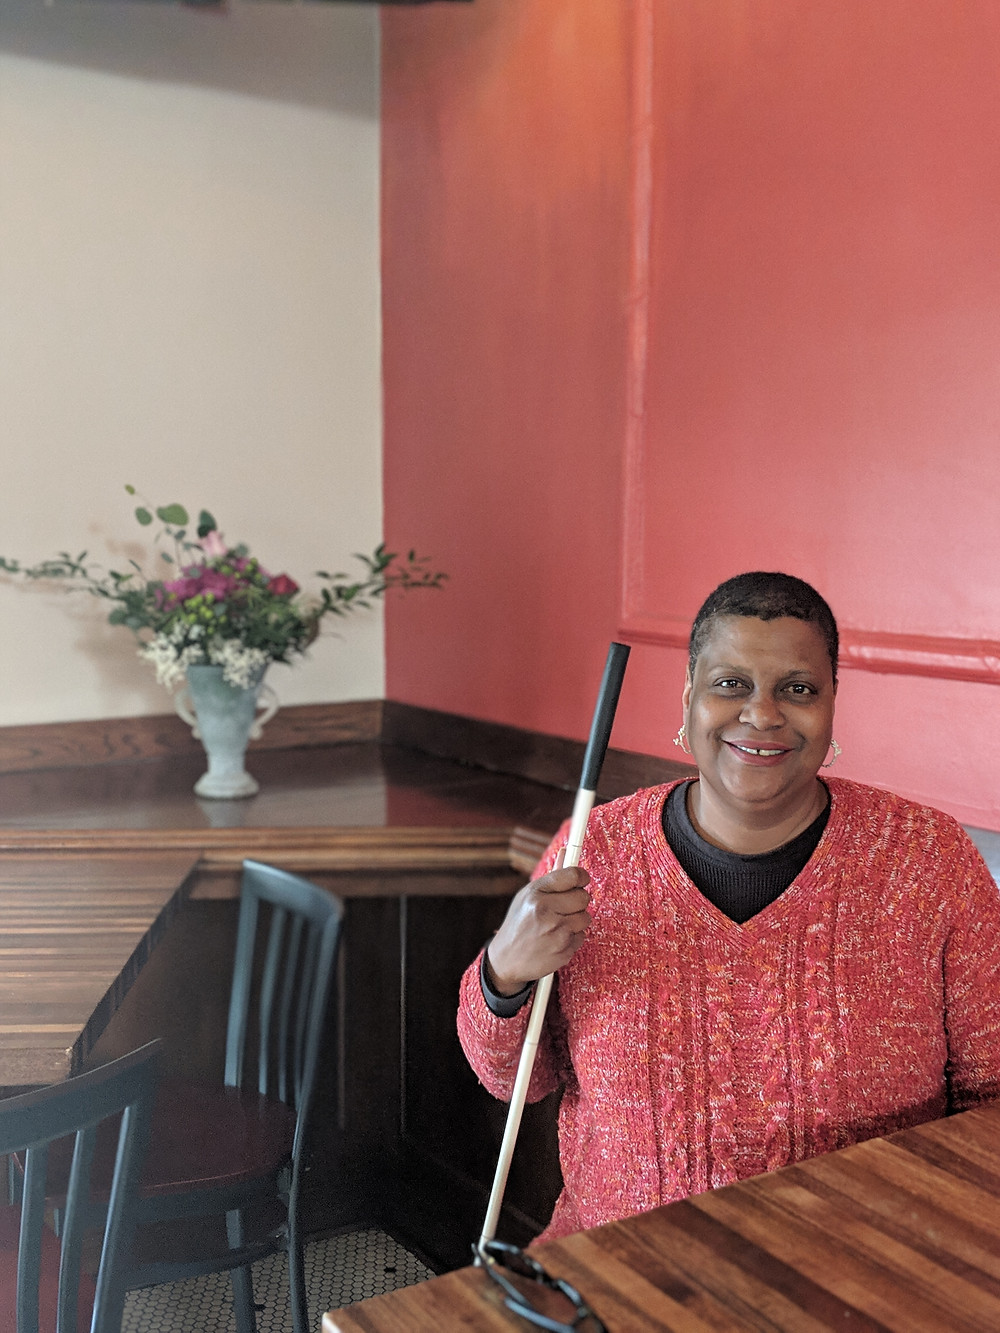 This is a picture of our Transitional Housing Case Manager Renee at Merchant's Pub which used to be Tellers.